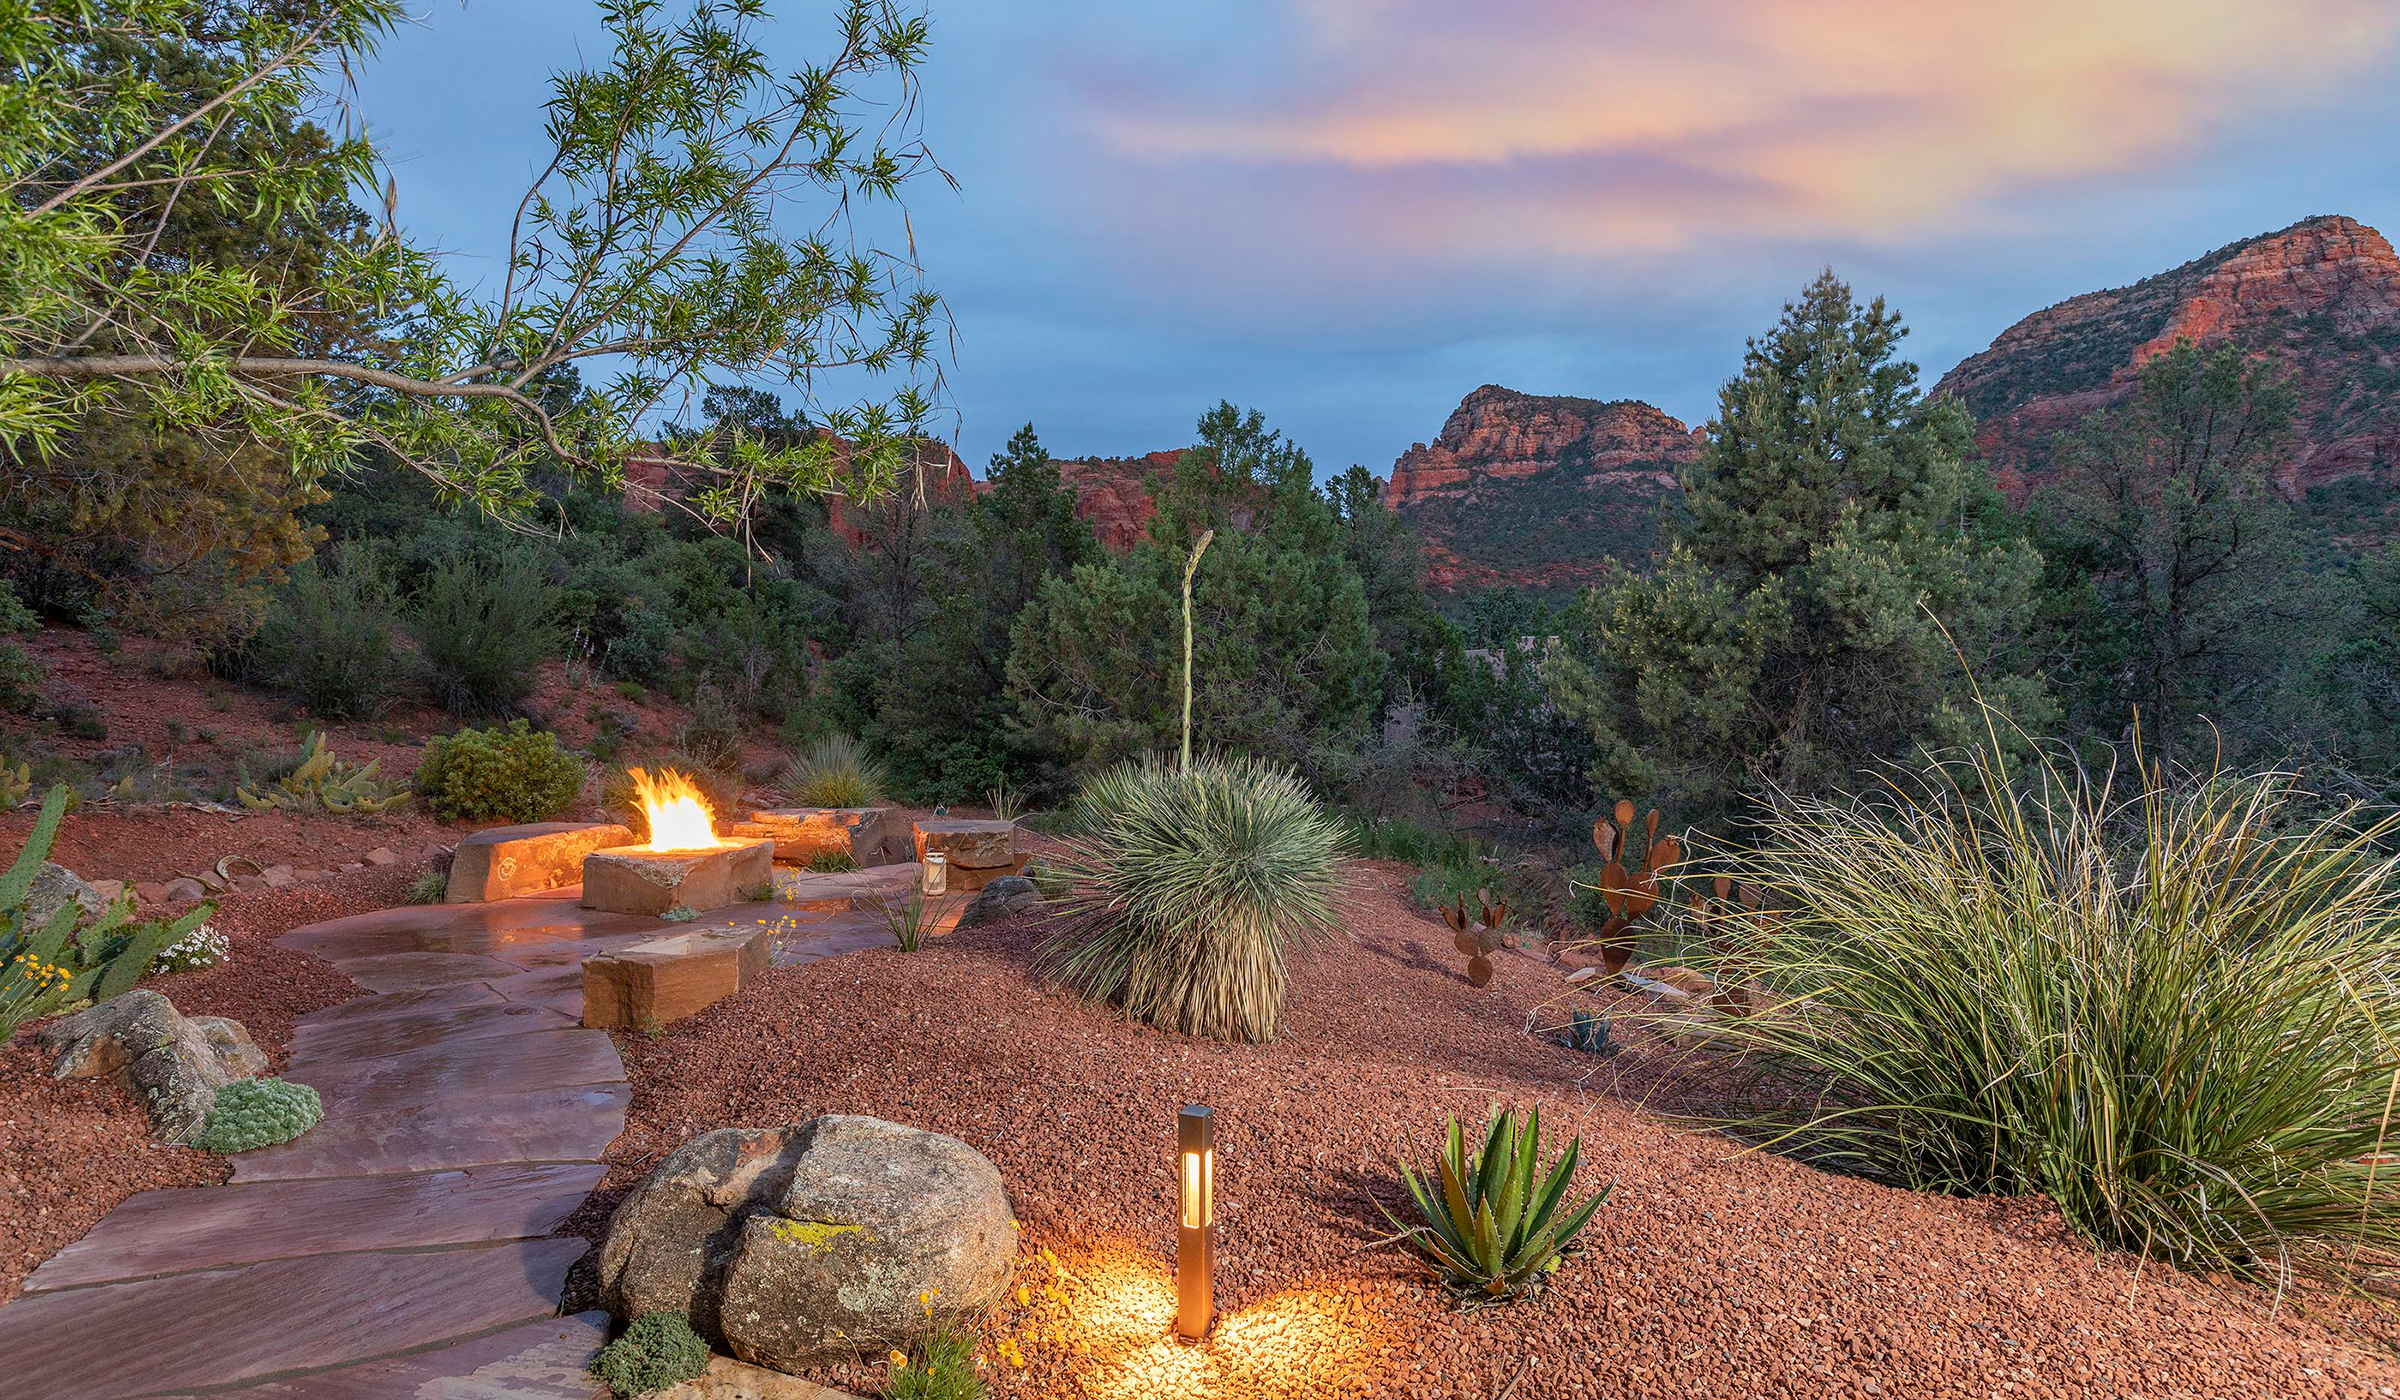 Patio landscape design in Sedona Arizona